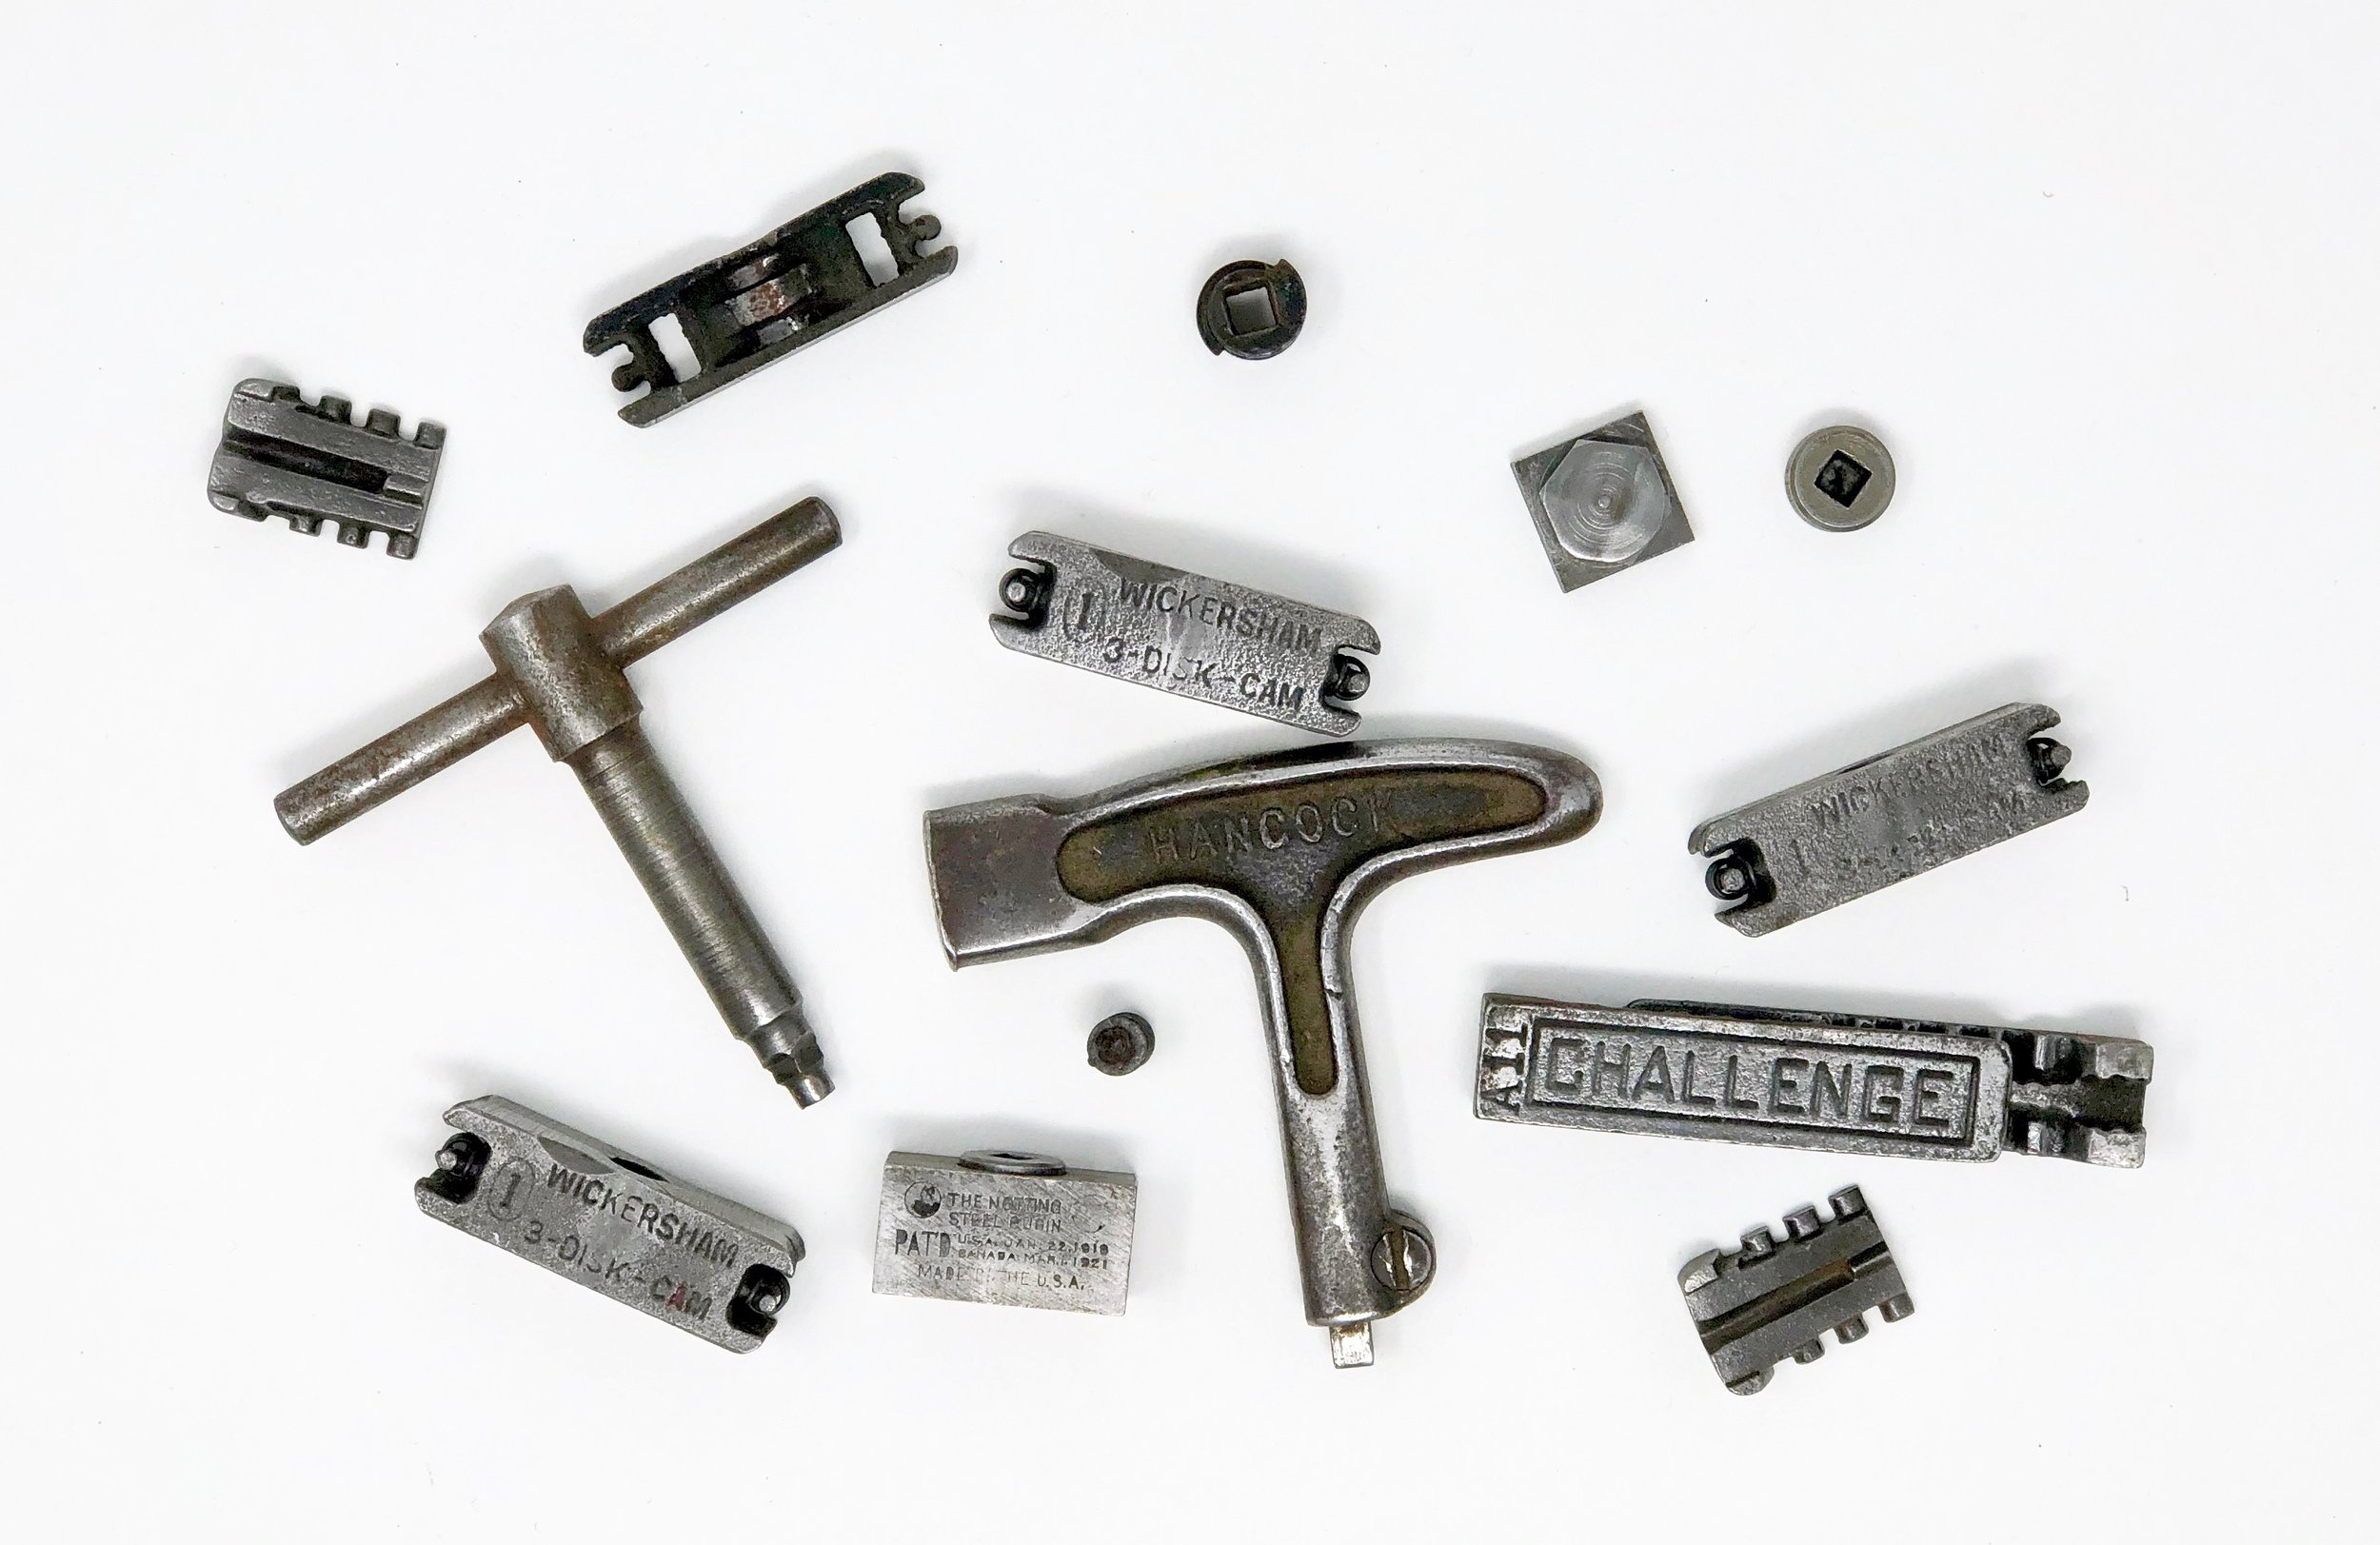 A variety of quoins, some of them disassembled, and two quoin keys.